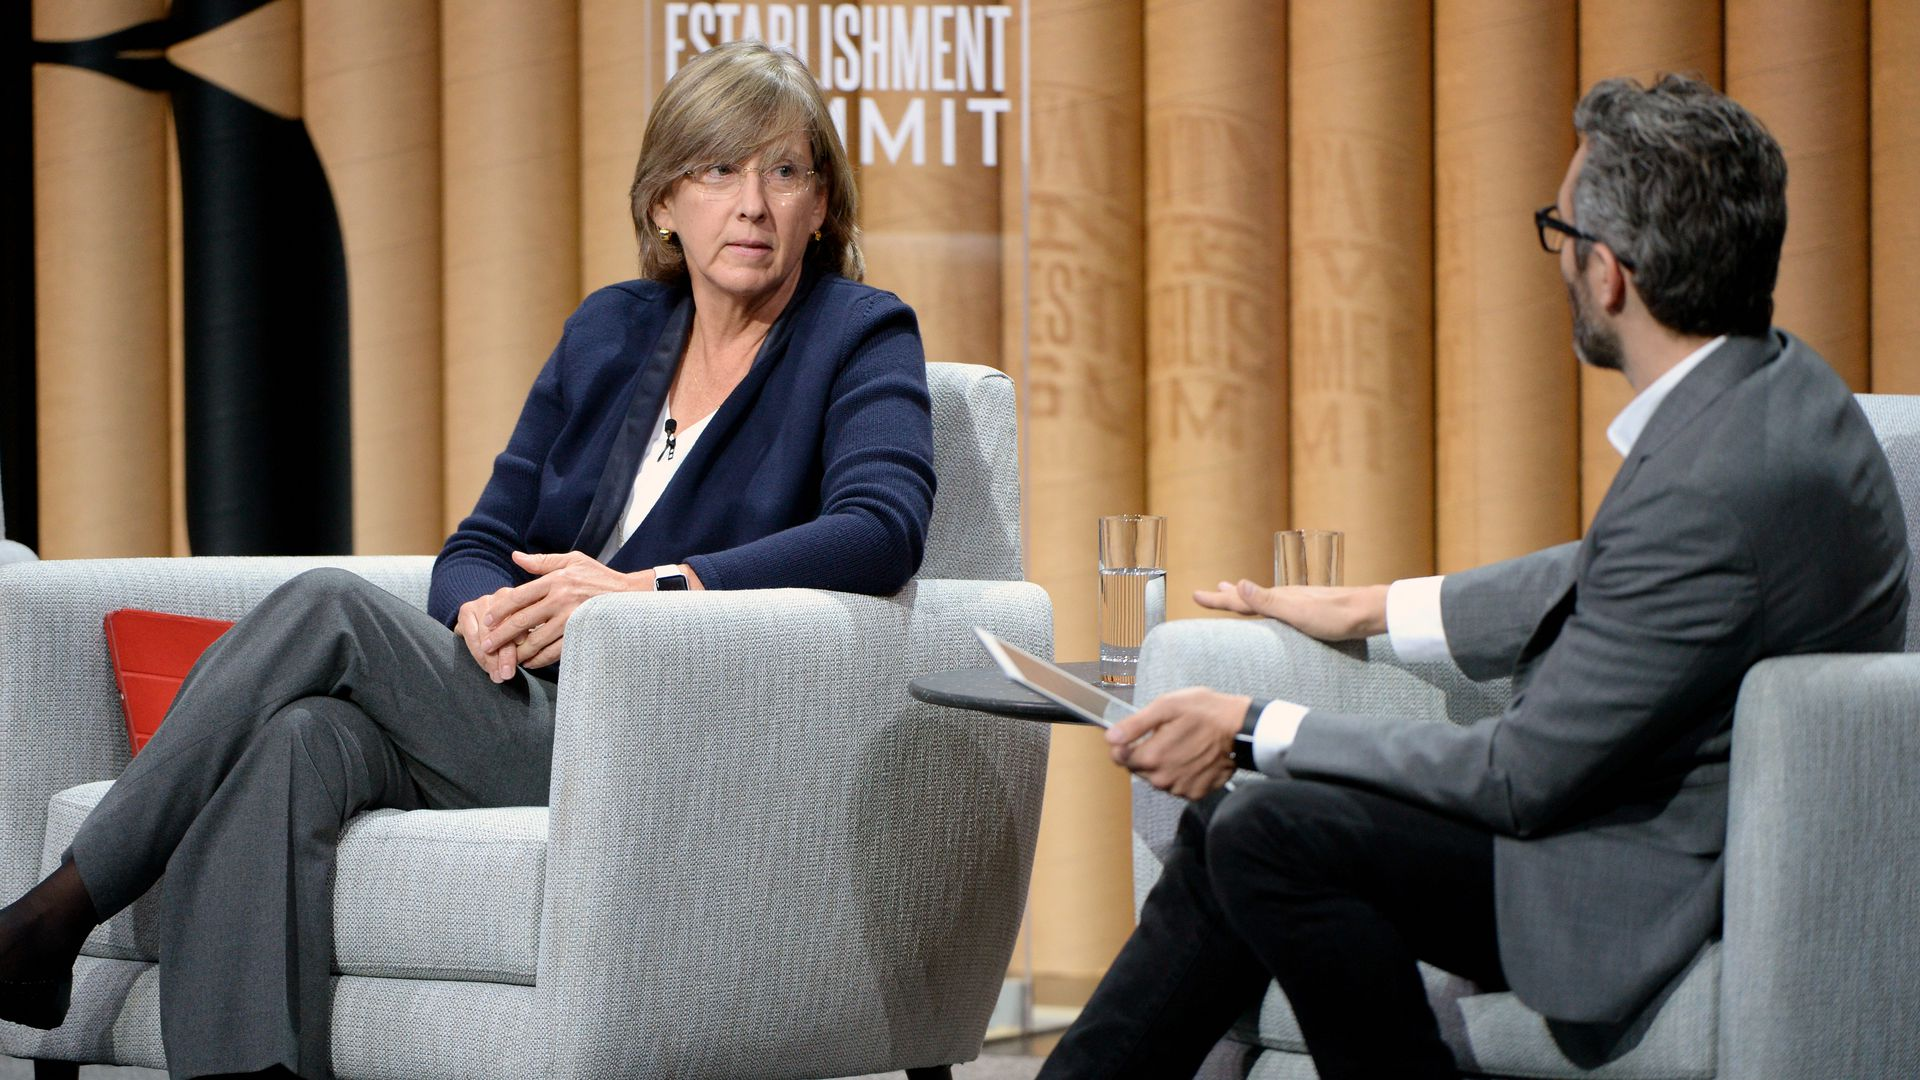 Mary Meeker at a conference.